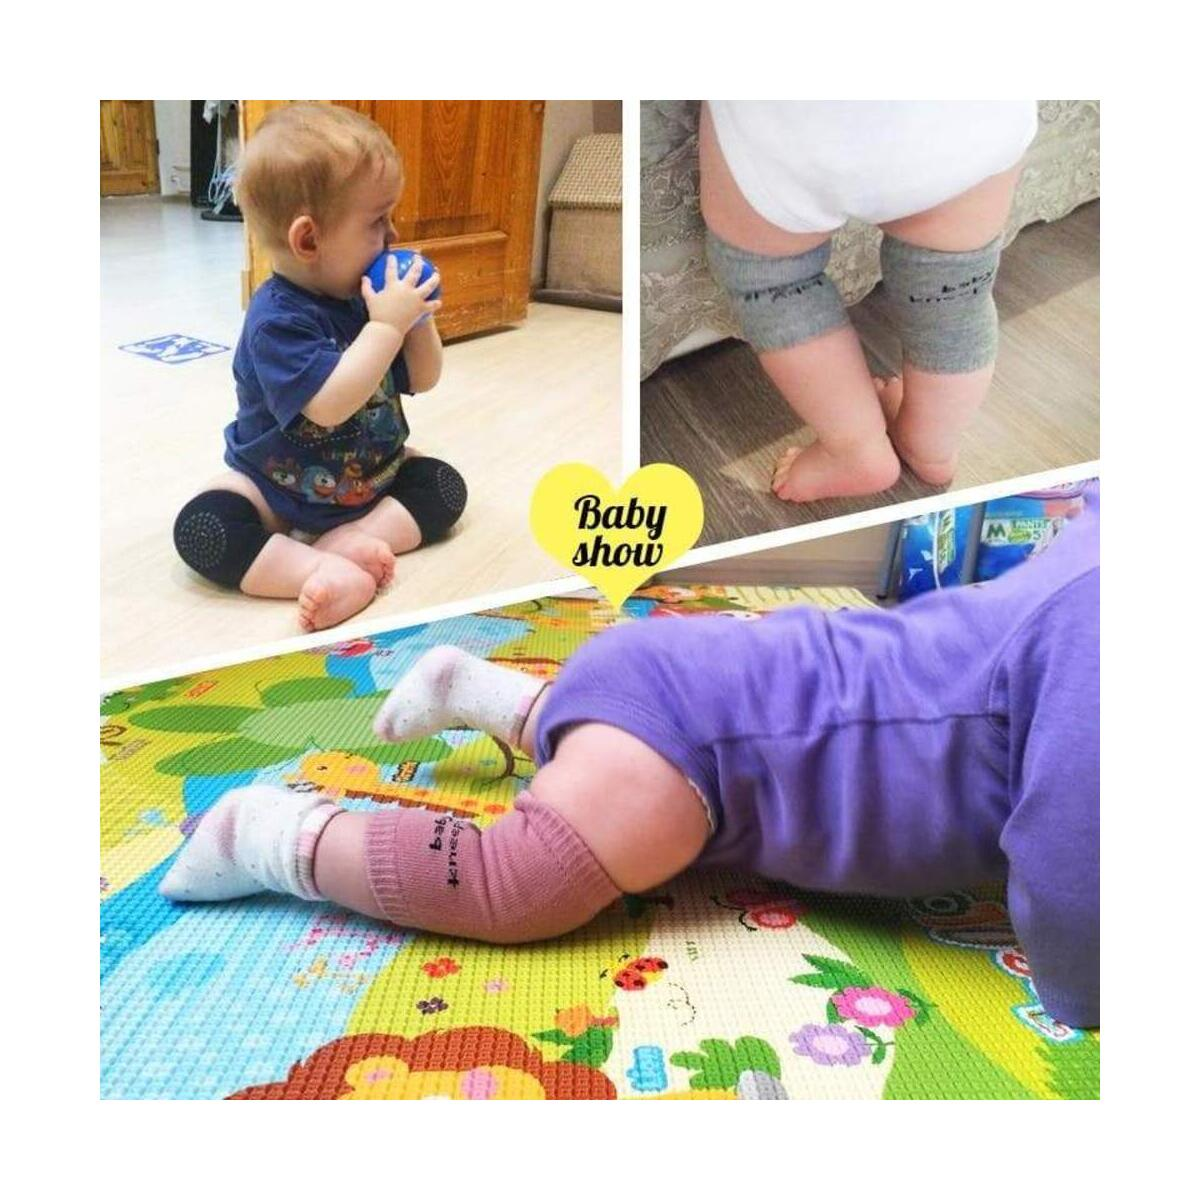 Baby Knee Protectors Adjustable Breathable Mesh for Crawling Anti-Slip Knee Protective Safety Cover